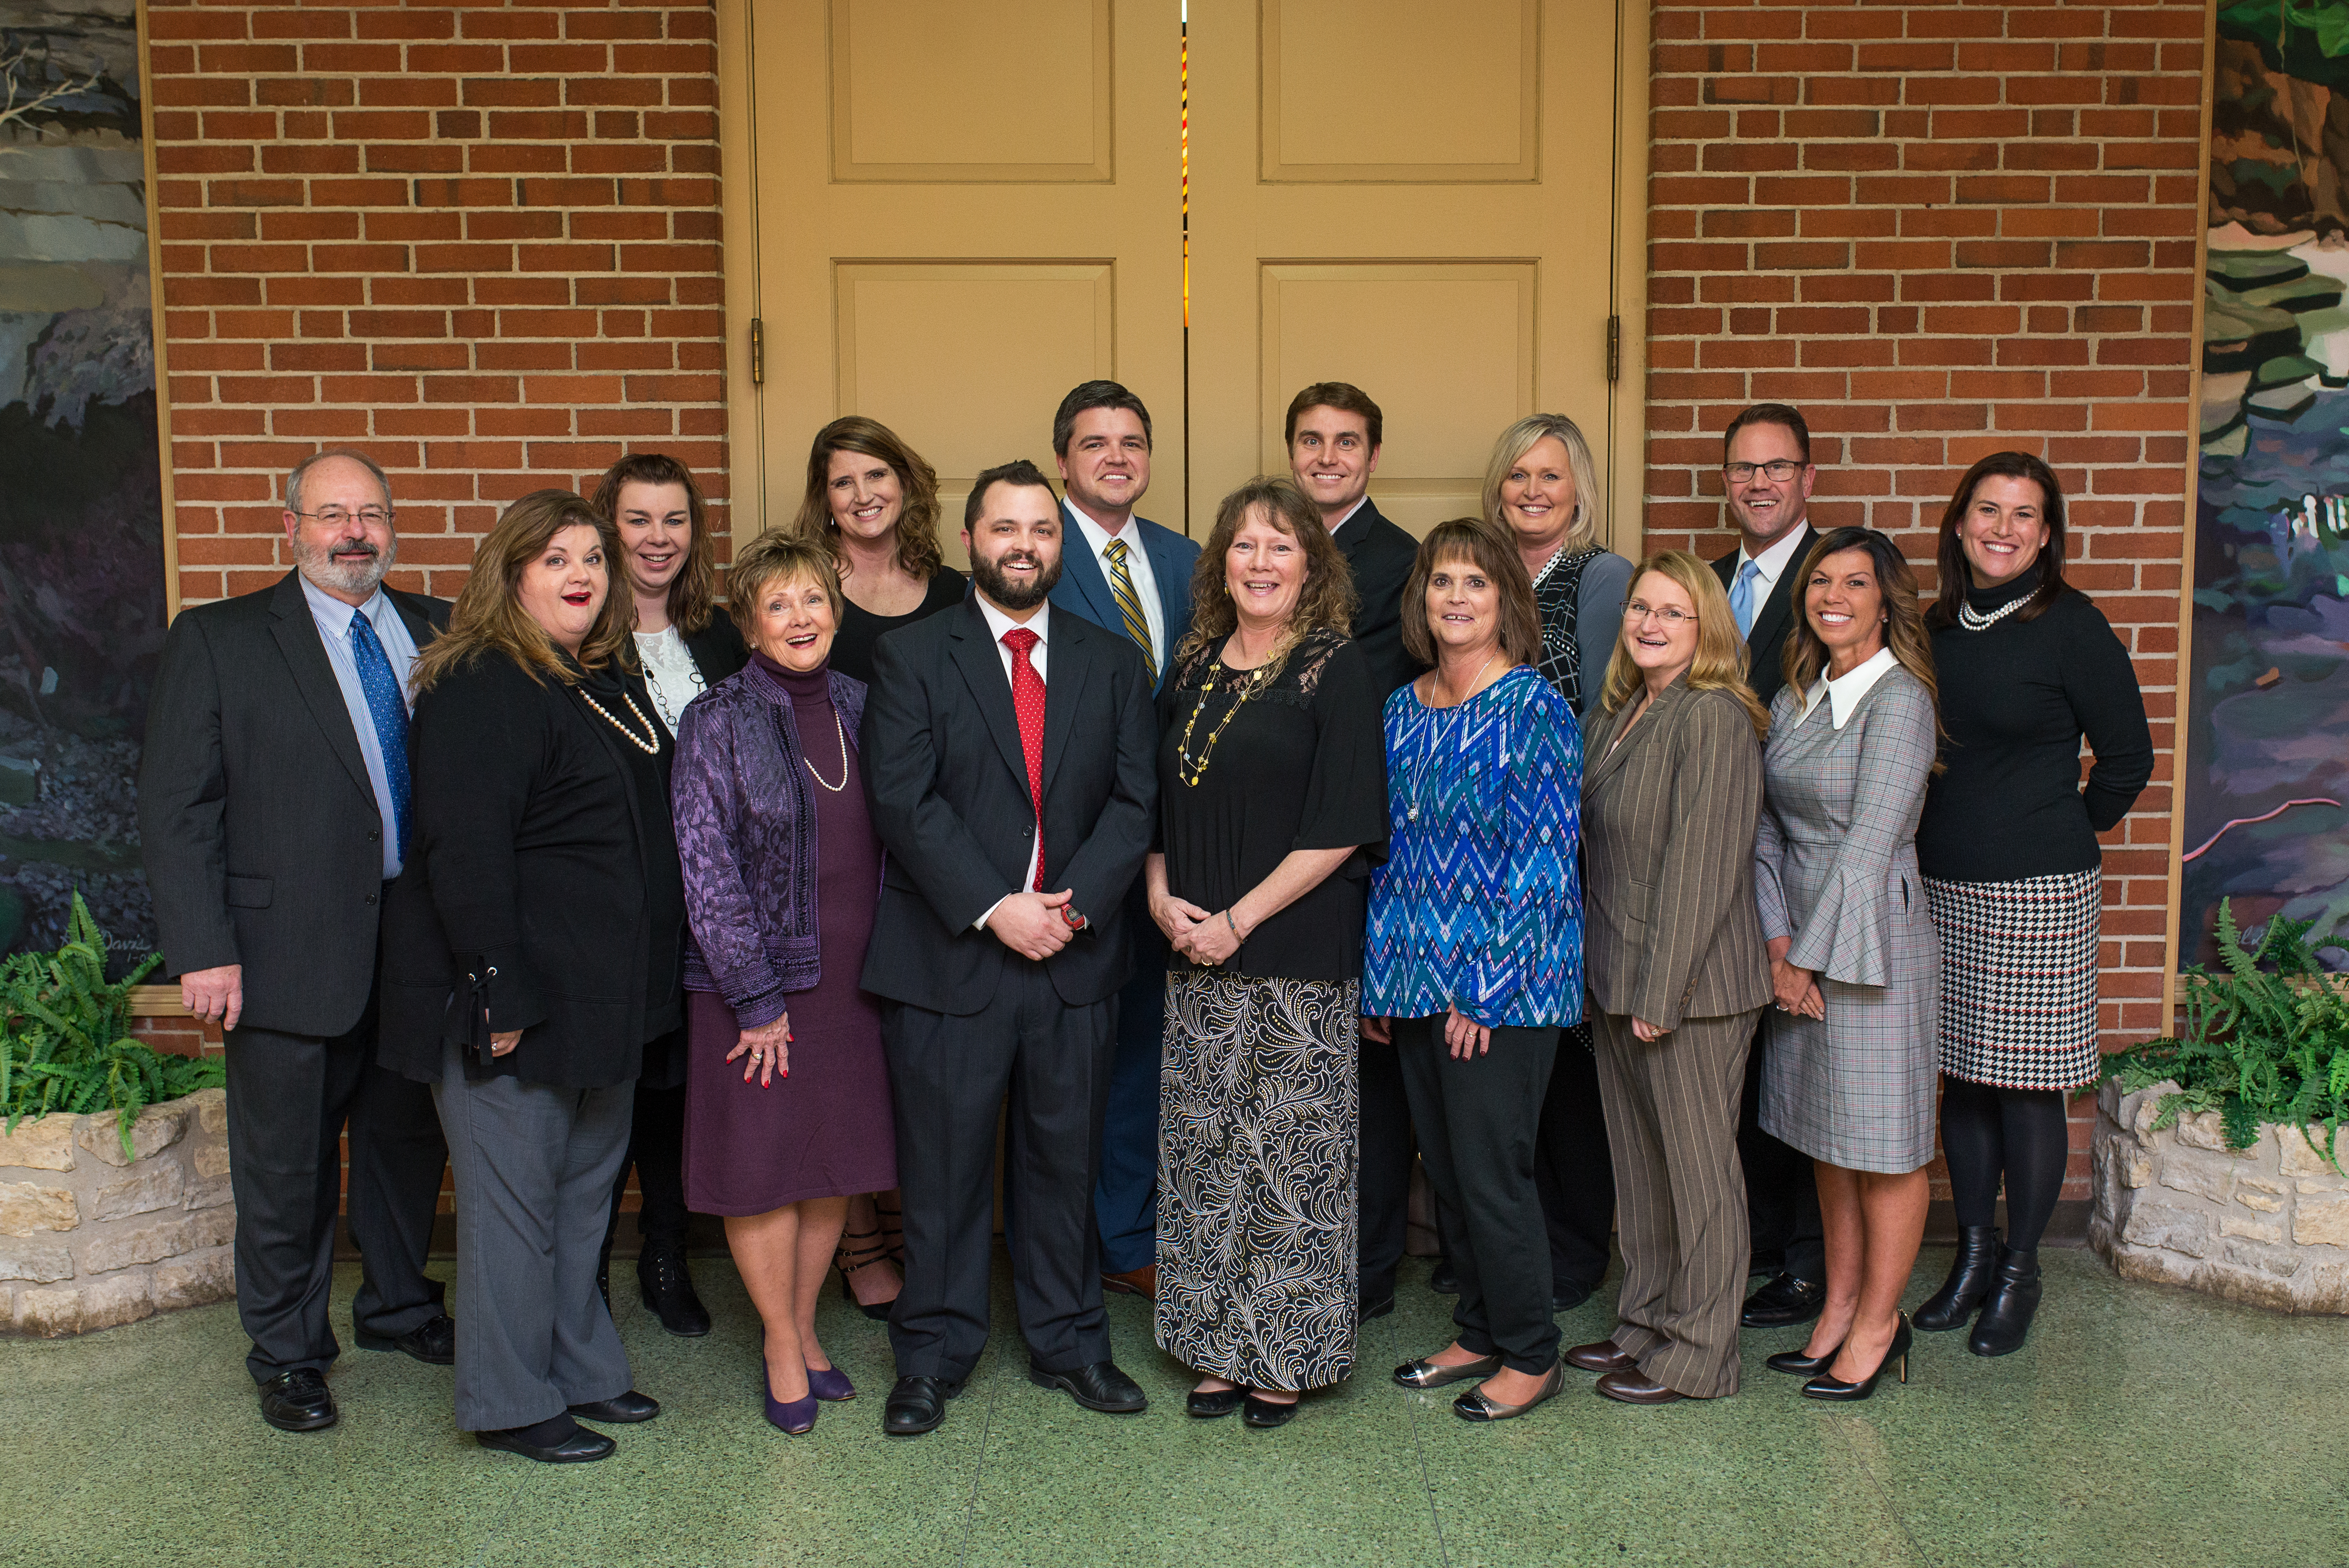 Madison Indiana, Madison Area Chamber of Commerce, 2019 Board of Directors